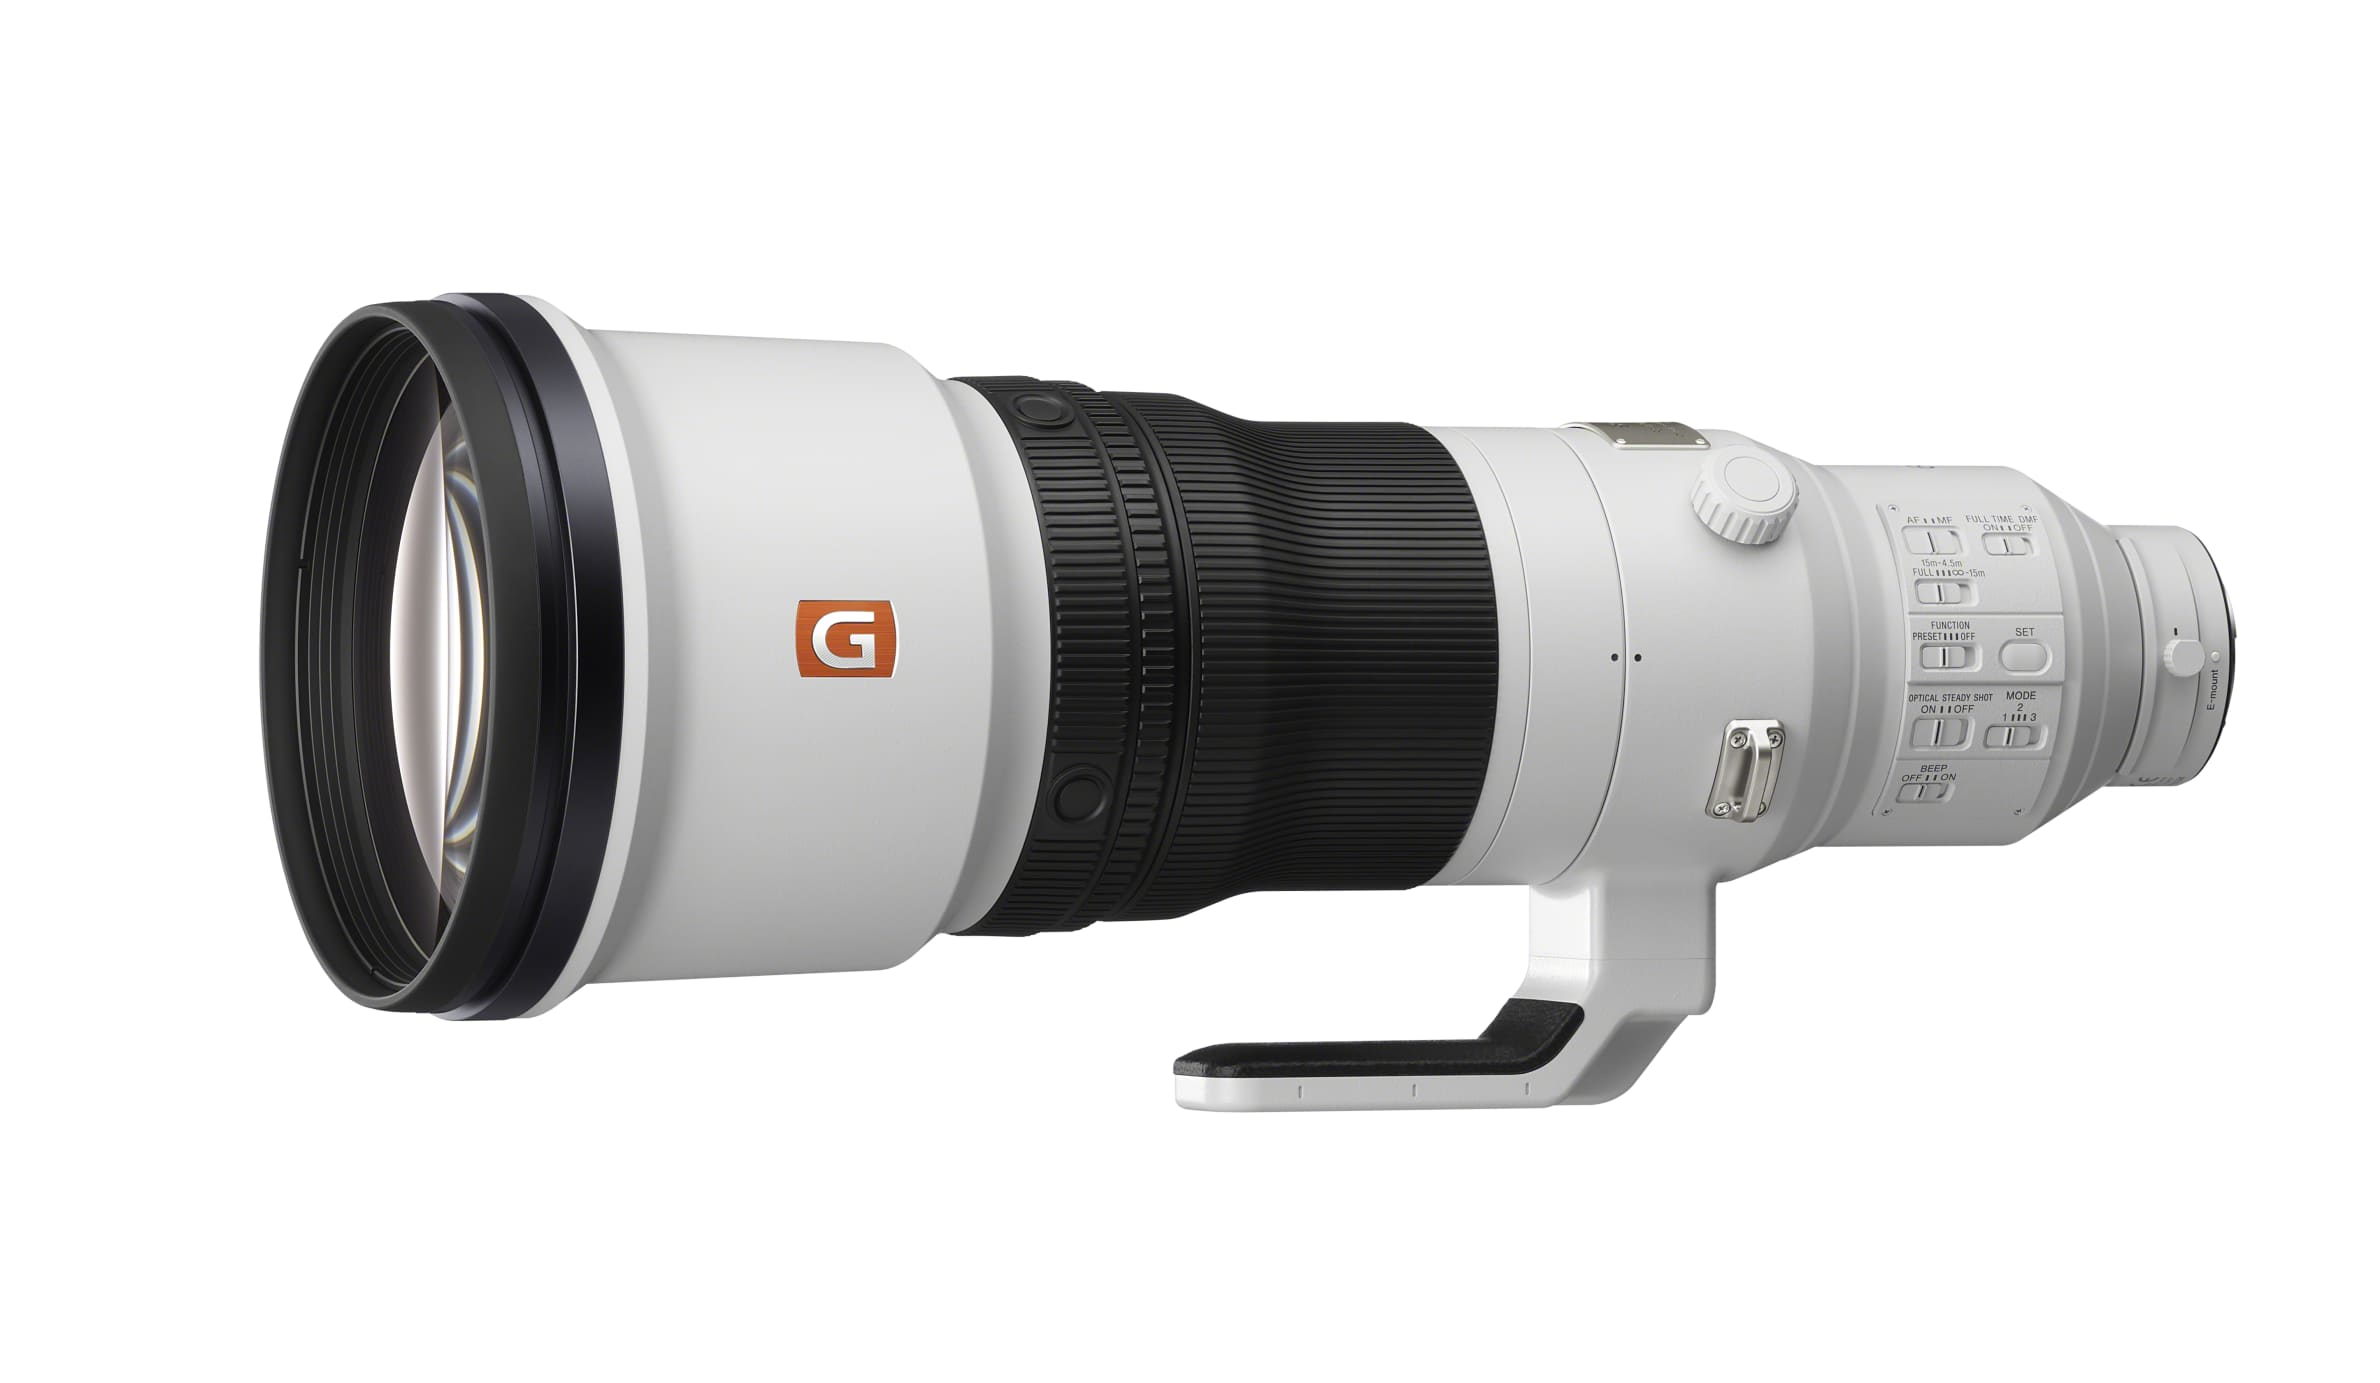 Sony: 600 mm F4 Super-Tele and 200-600 mm F5.6-6.3 Super-Telezoom lens for E-Mount